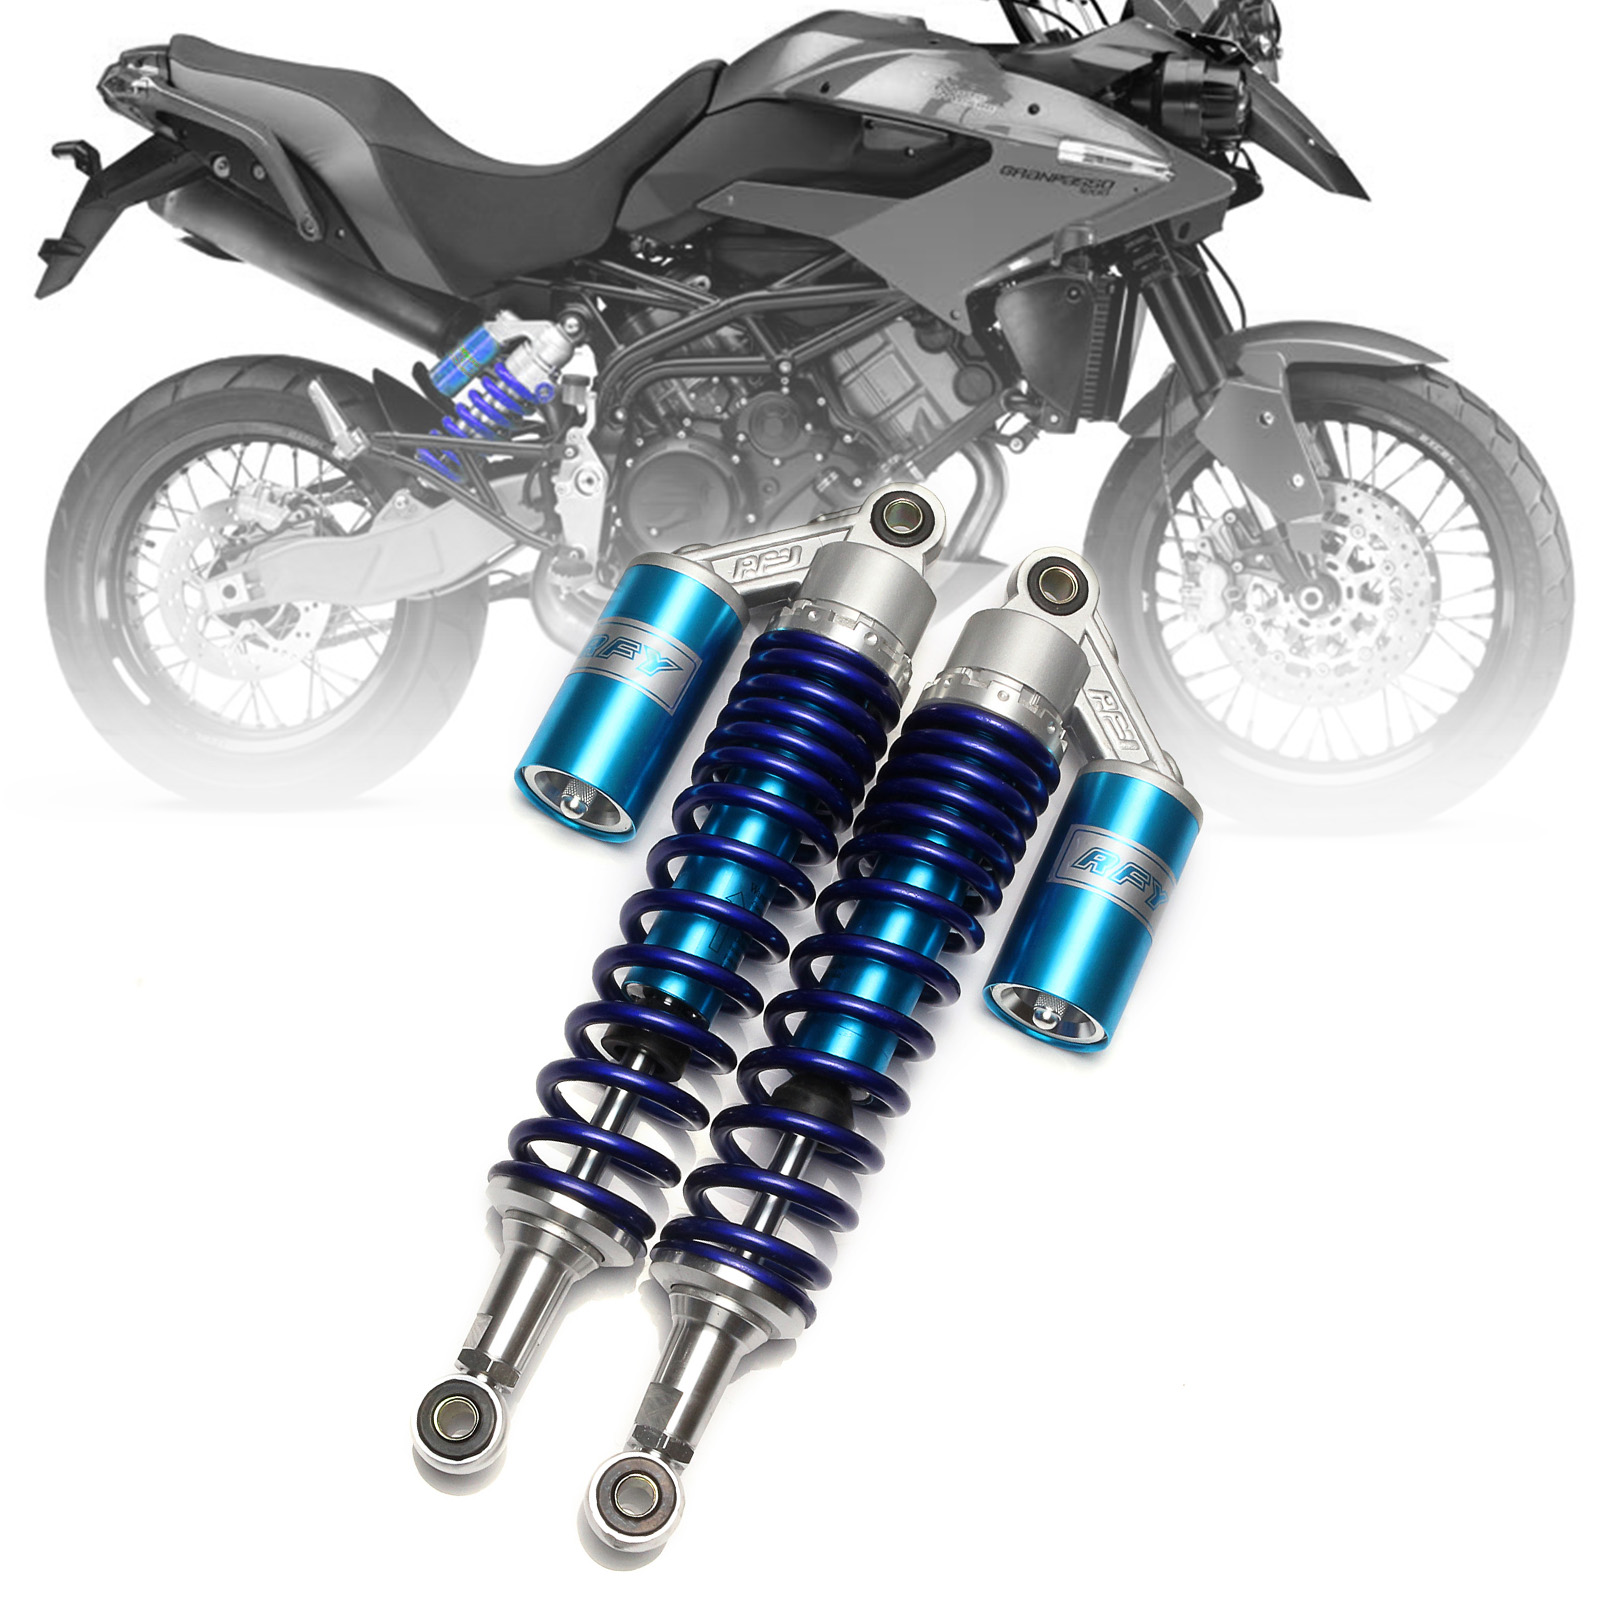 1 pair Universal 375mm 380mm Spring 8mm Motorcycle Air Shock Absorber Rear Suspension For Yamaha Ducati Scooter ATV blue